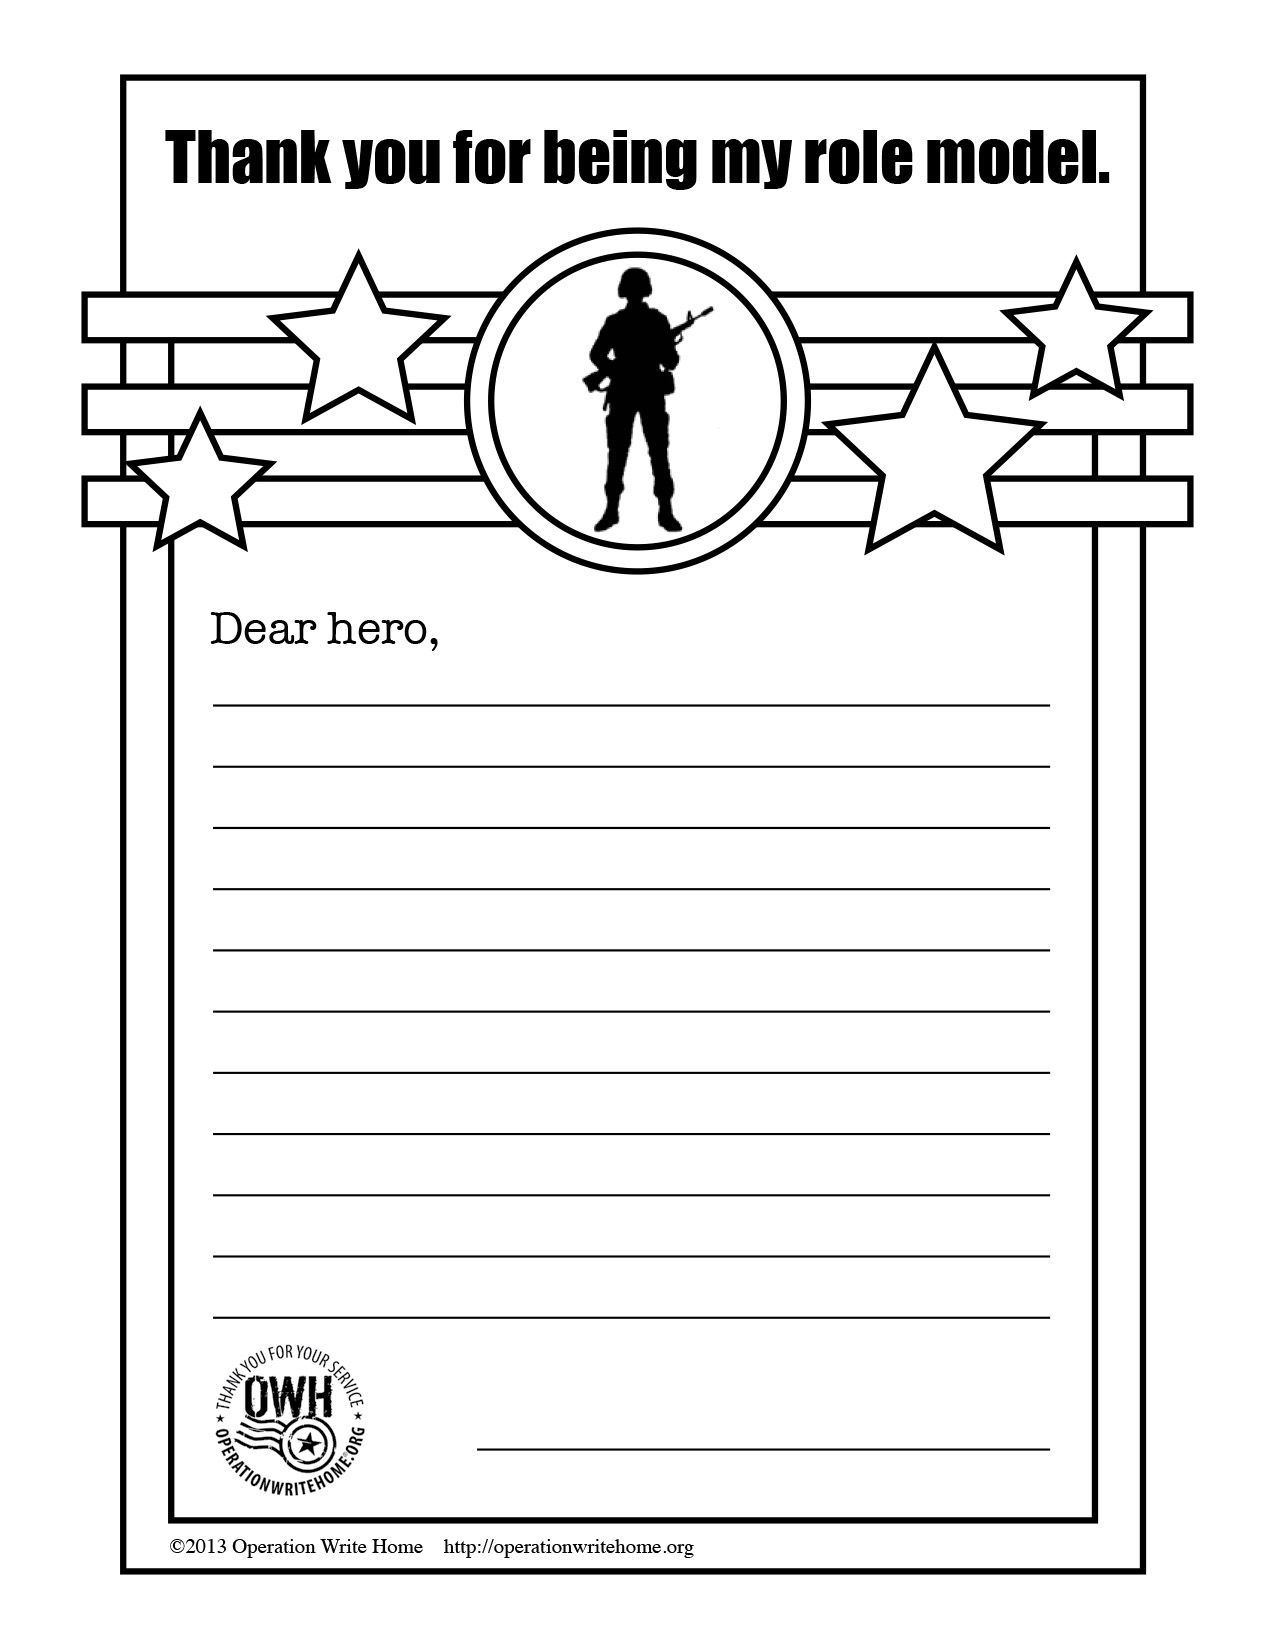 Owh S Free Coloring Pages Amp Space For Children To Write To